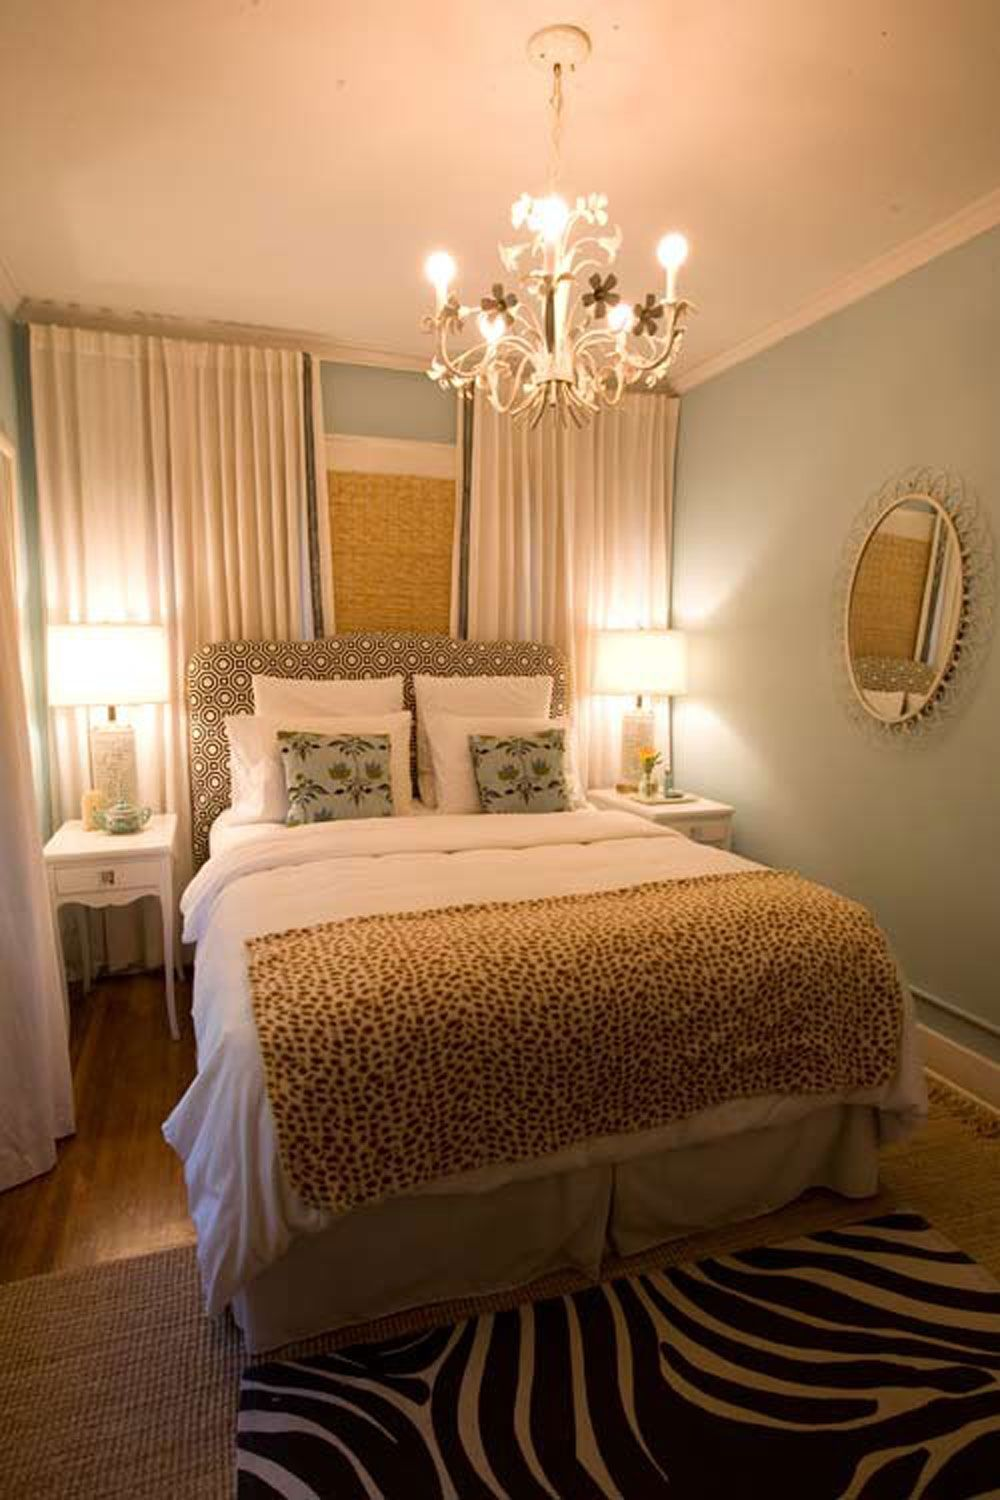 Design Tips For Decorating A Small Bedroom On A Budget Very Small Bedroom Small Master Bedroom Small Master Bedroom Decorating Ideas